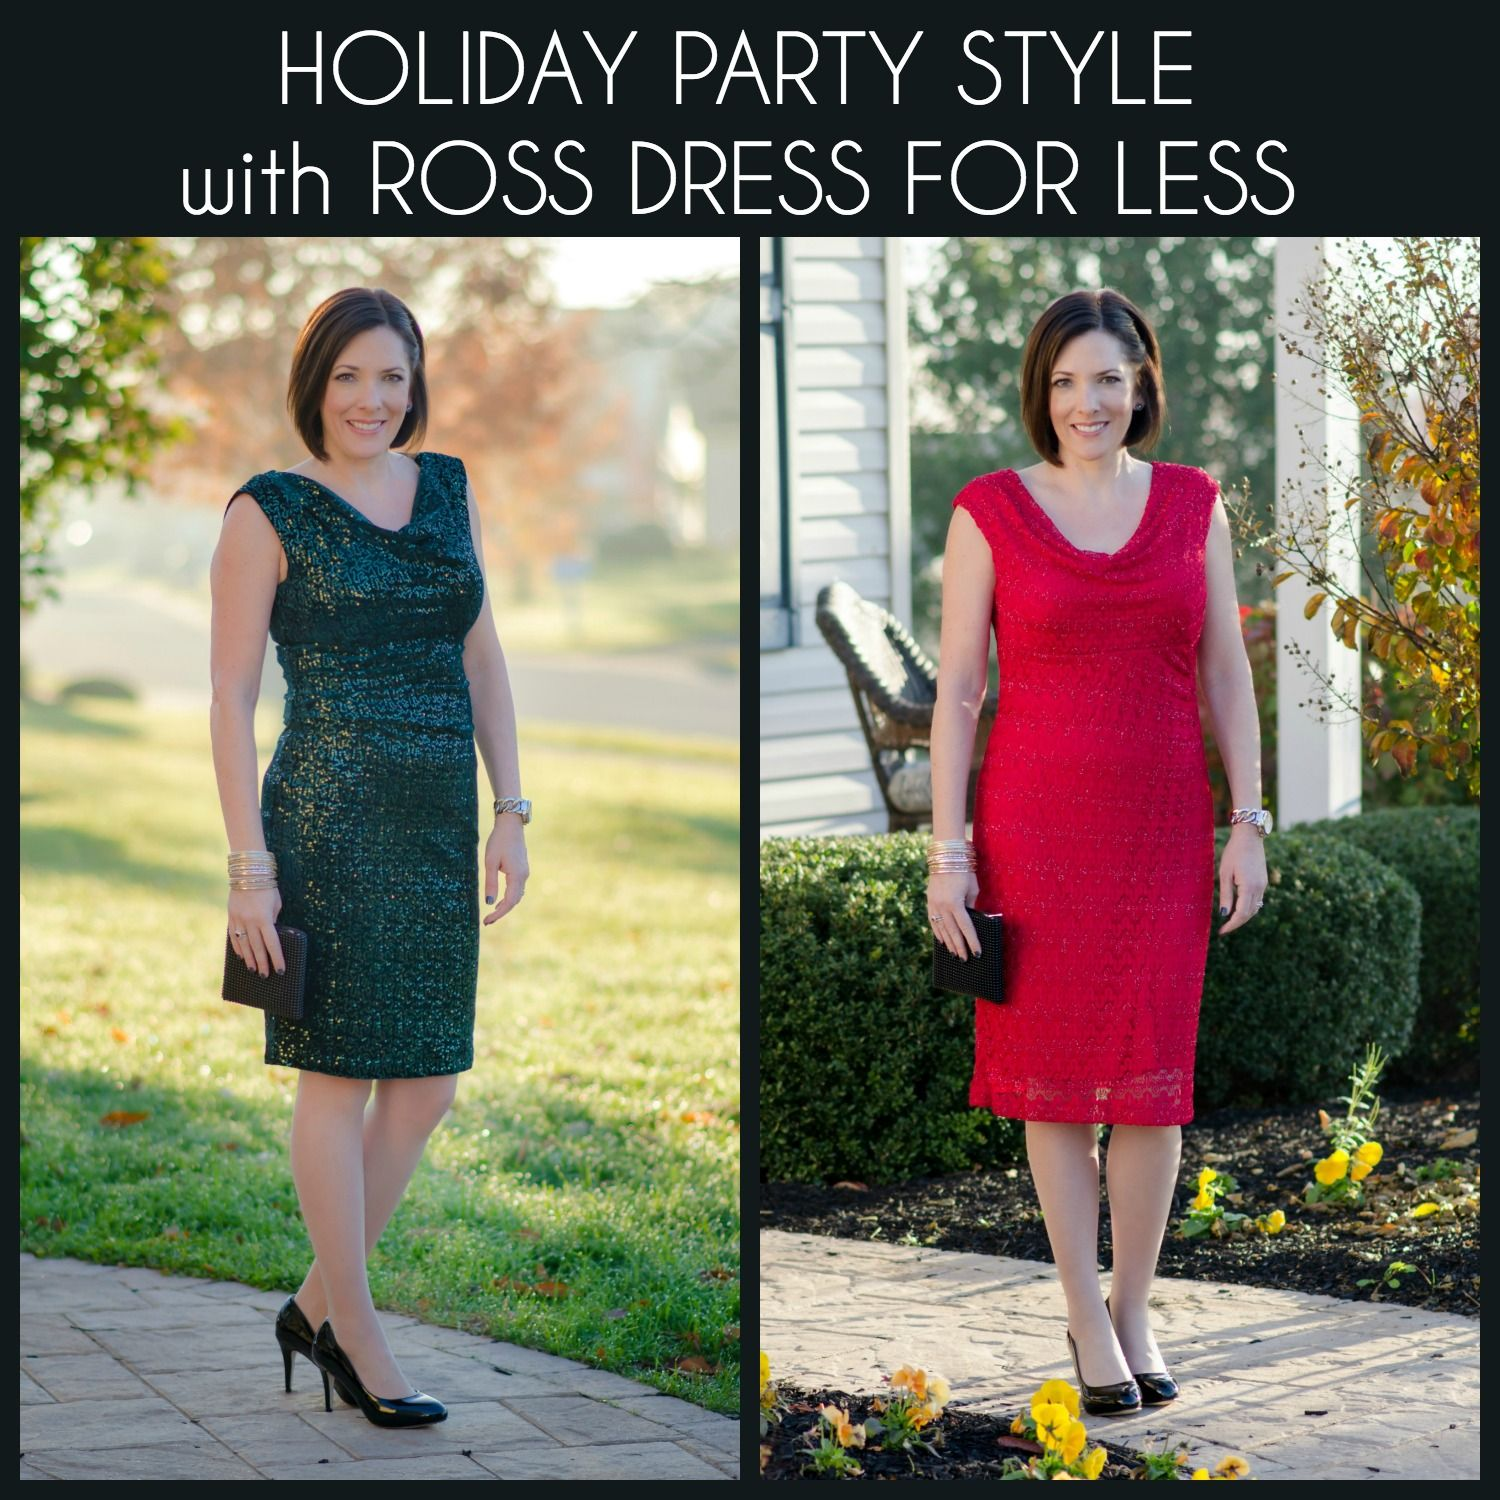 Style dress for less